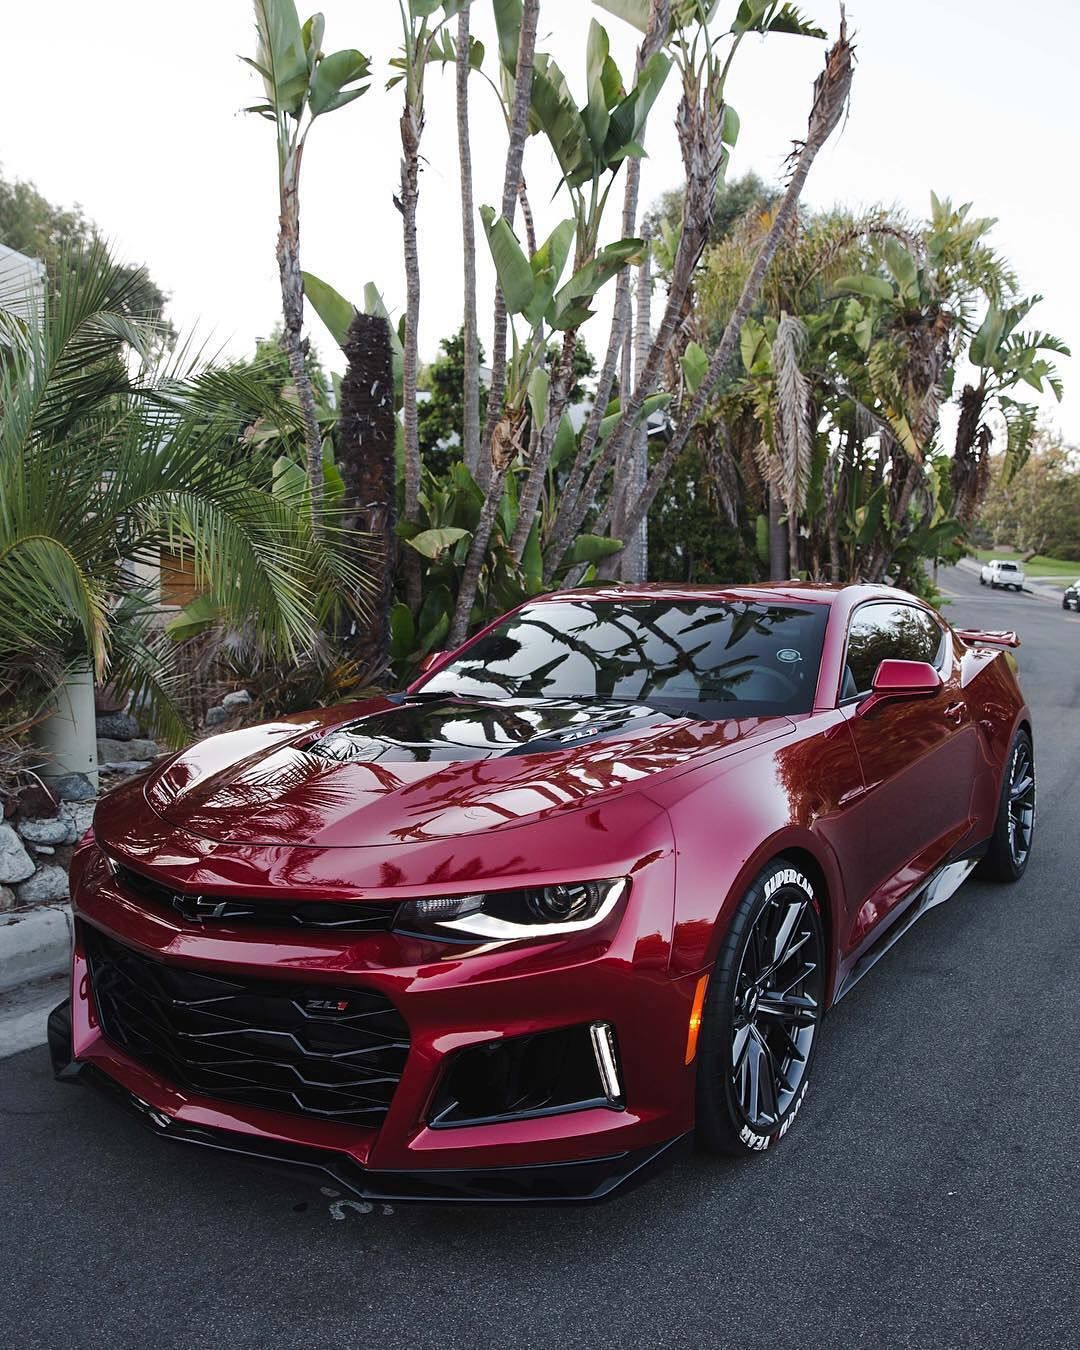 2018 Cherry Red Chevrolet Camaro Zl1